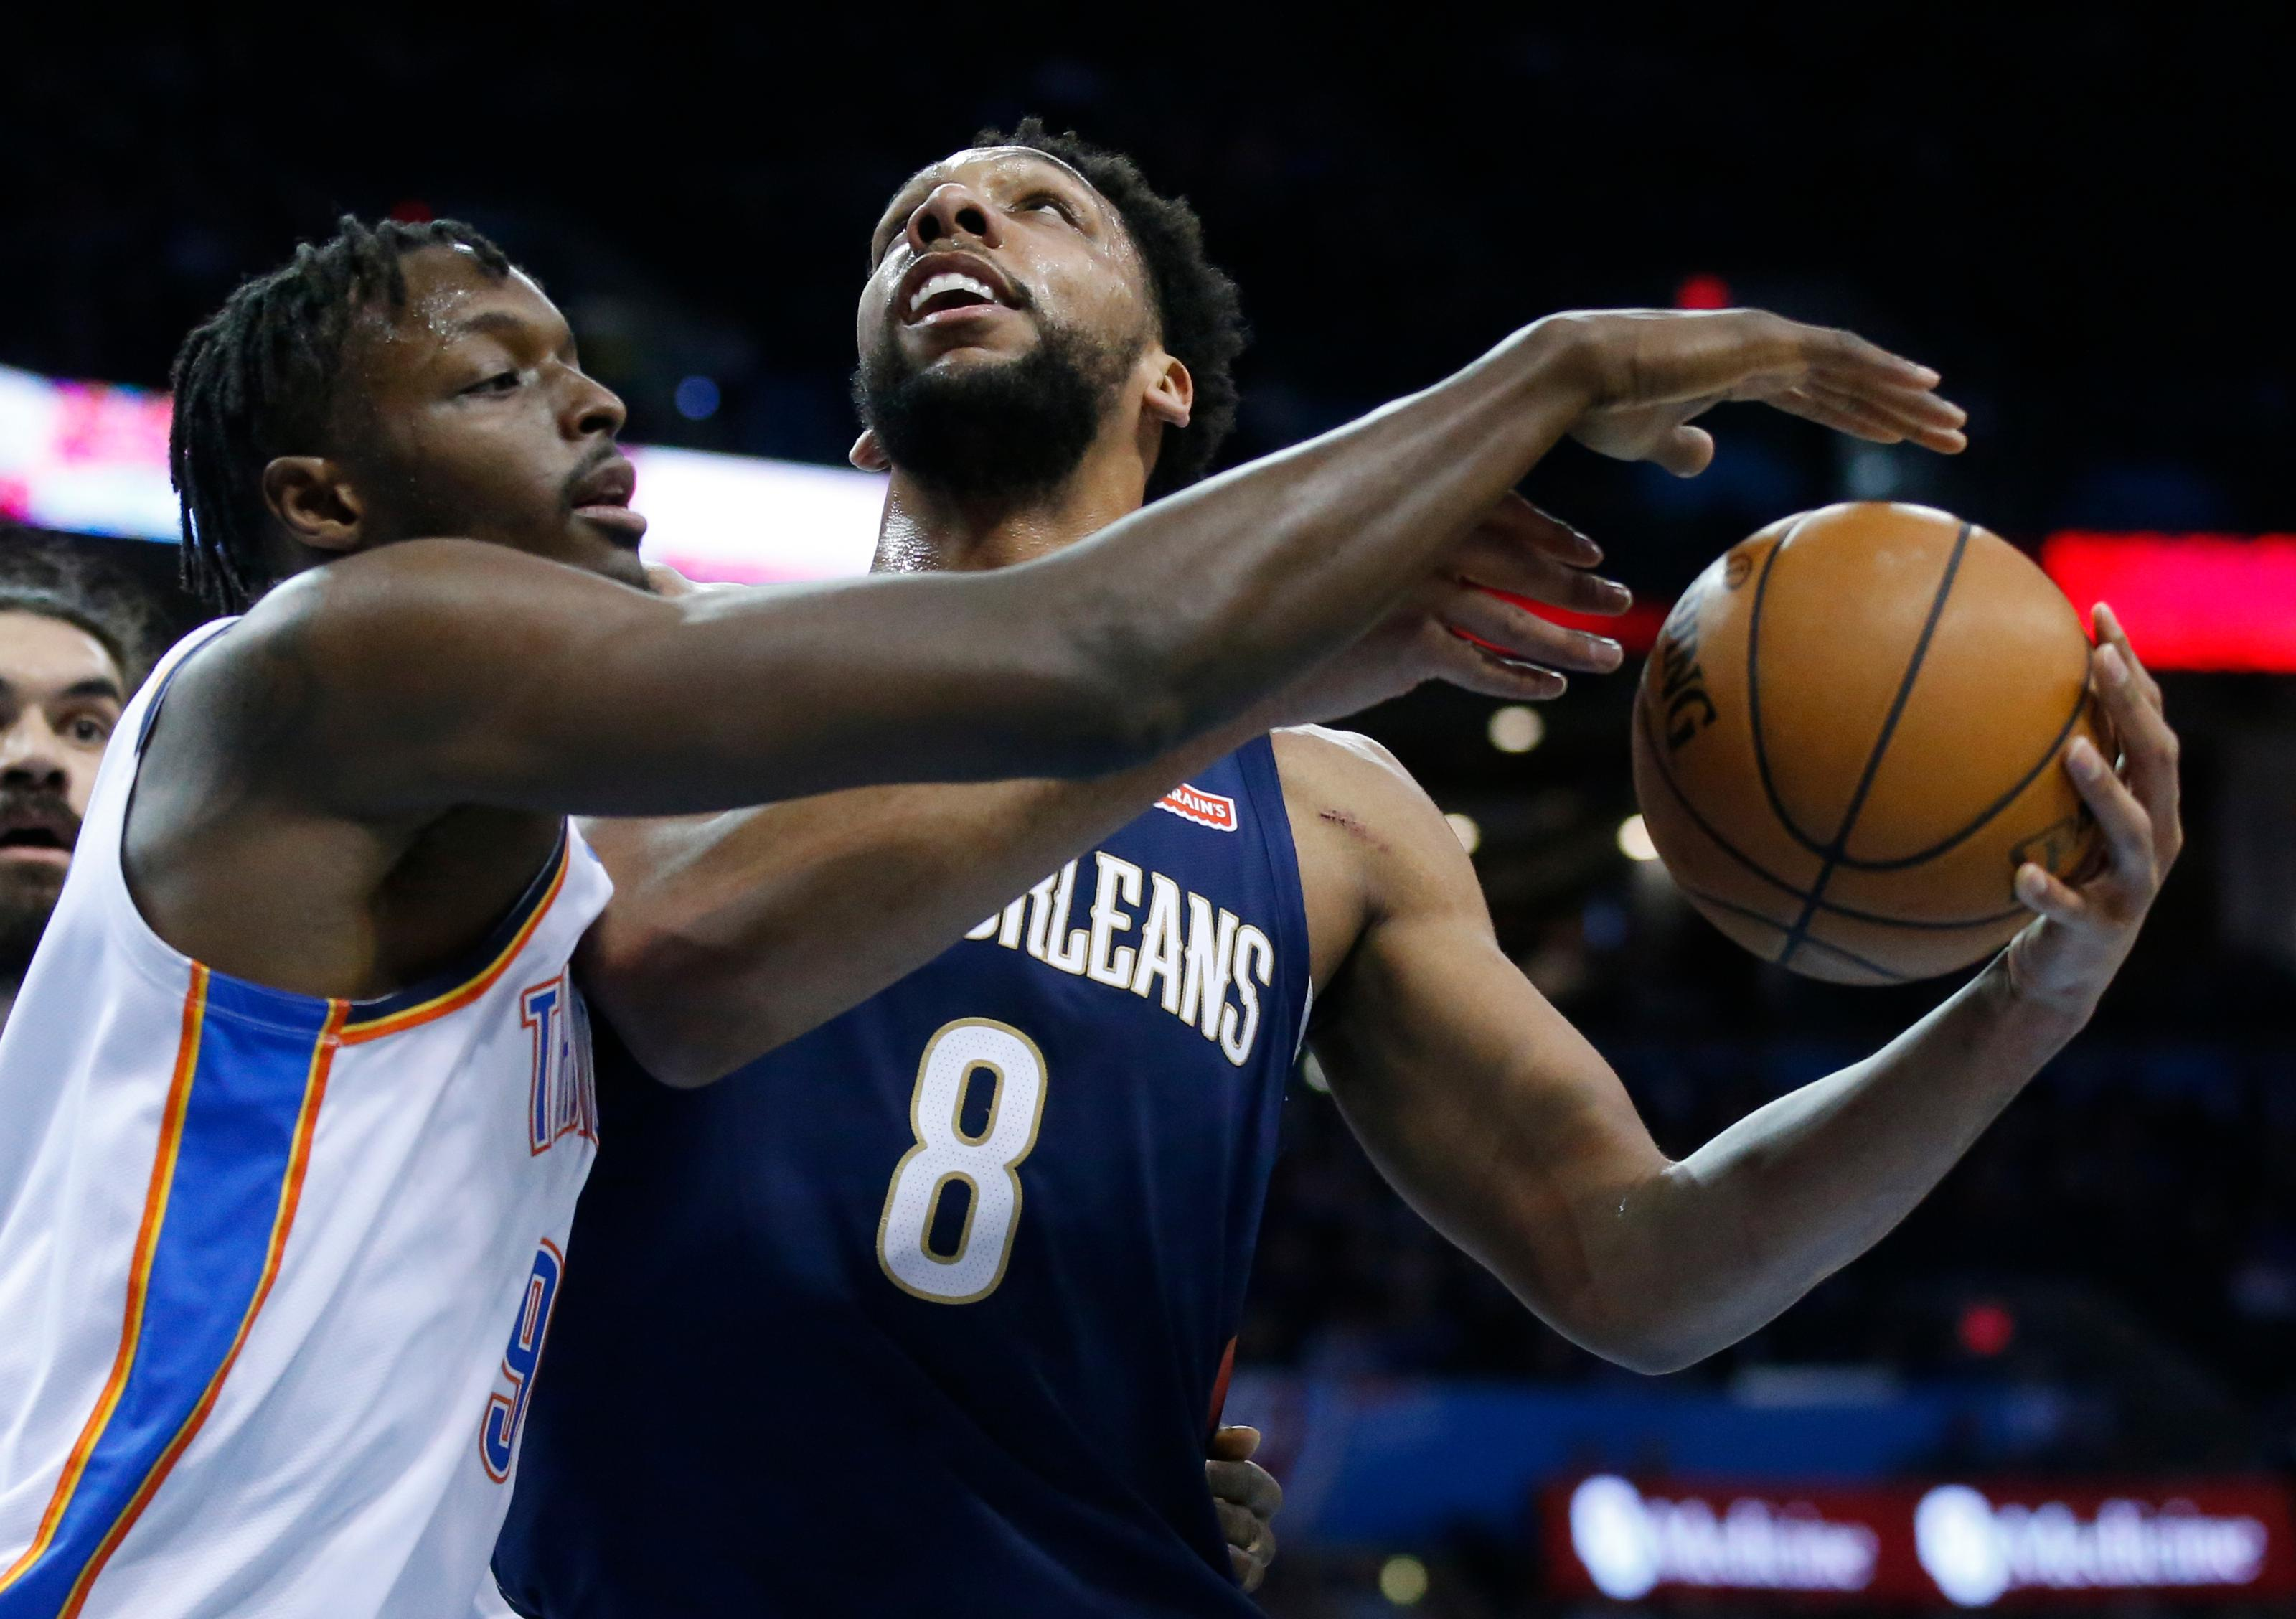 New Orleans Pelicans center Jahlil Okafor (8) is defended by Oklahoma City Thunder forward Jerami Grant (9) during the first half of an NBA basketball game in Oklahoma City, Thursday, Jan. 24, 2019. (AP Photo/Sue Ogrocki)